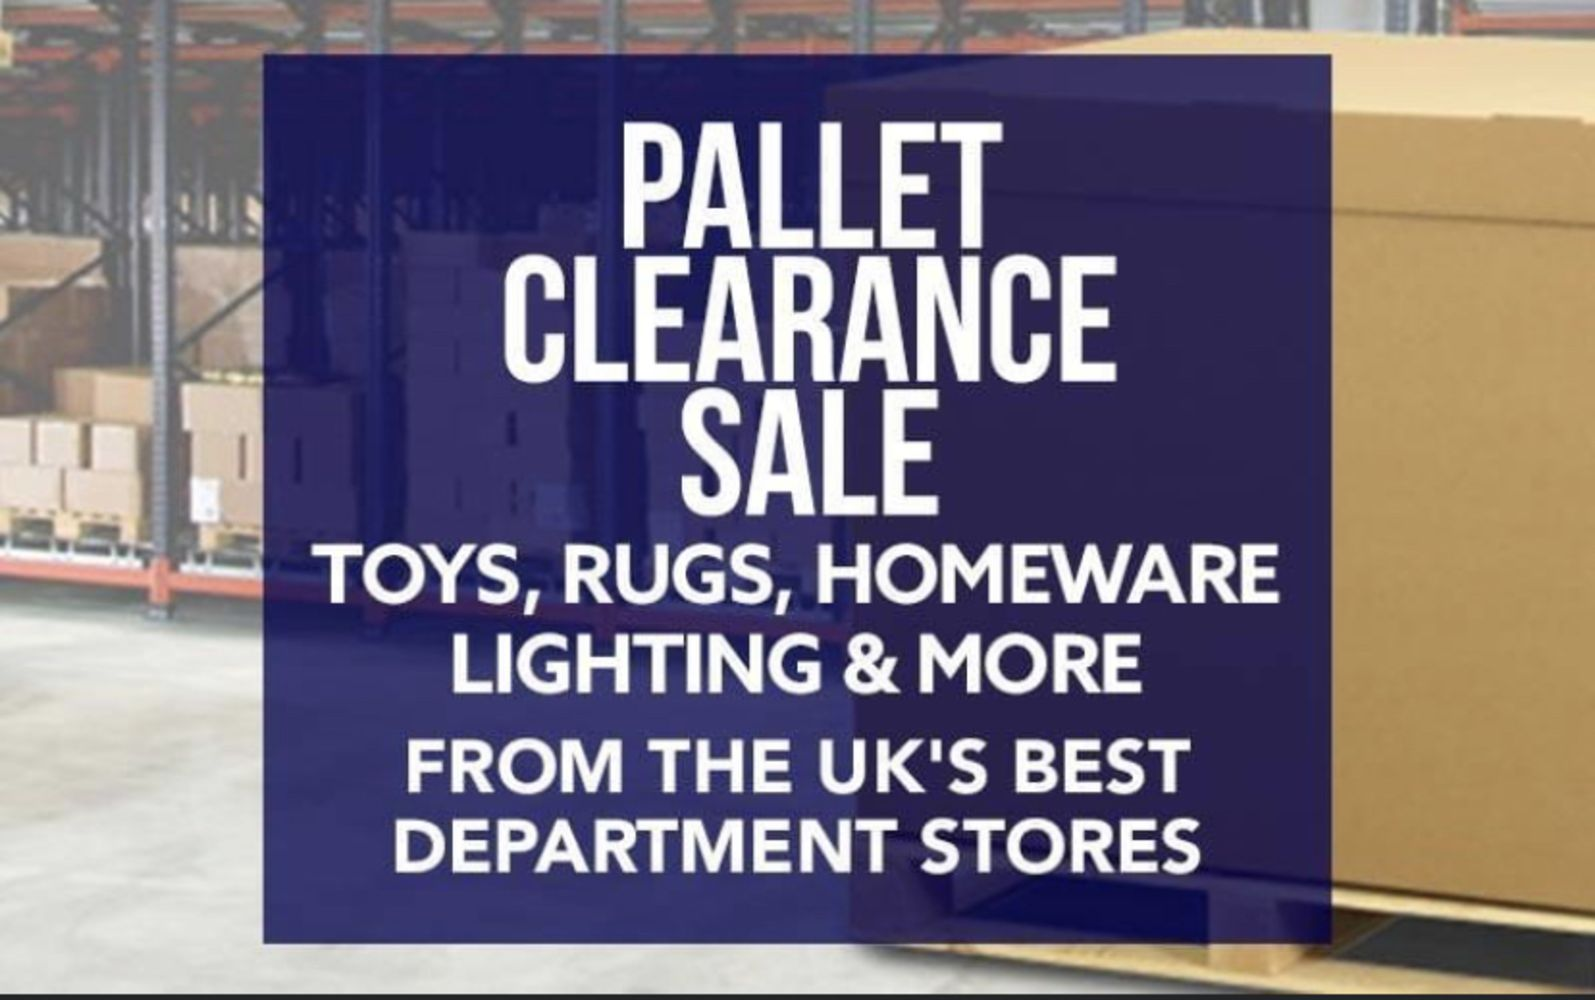 No Reserve - Pallet Clearance Sale! 9th August 2021